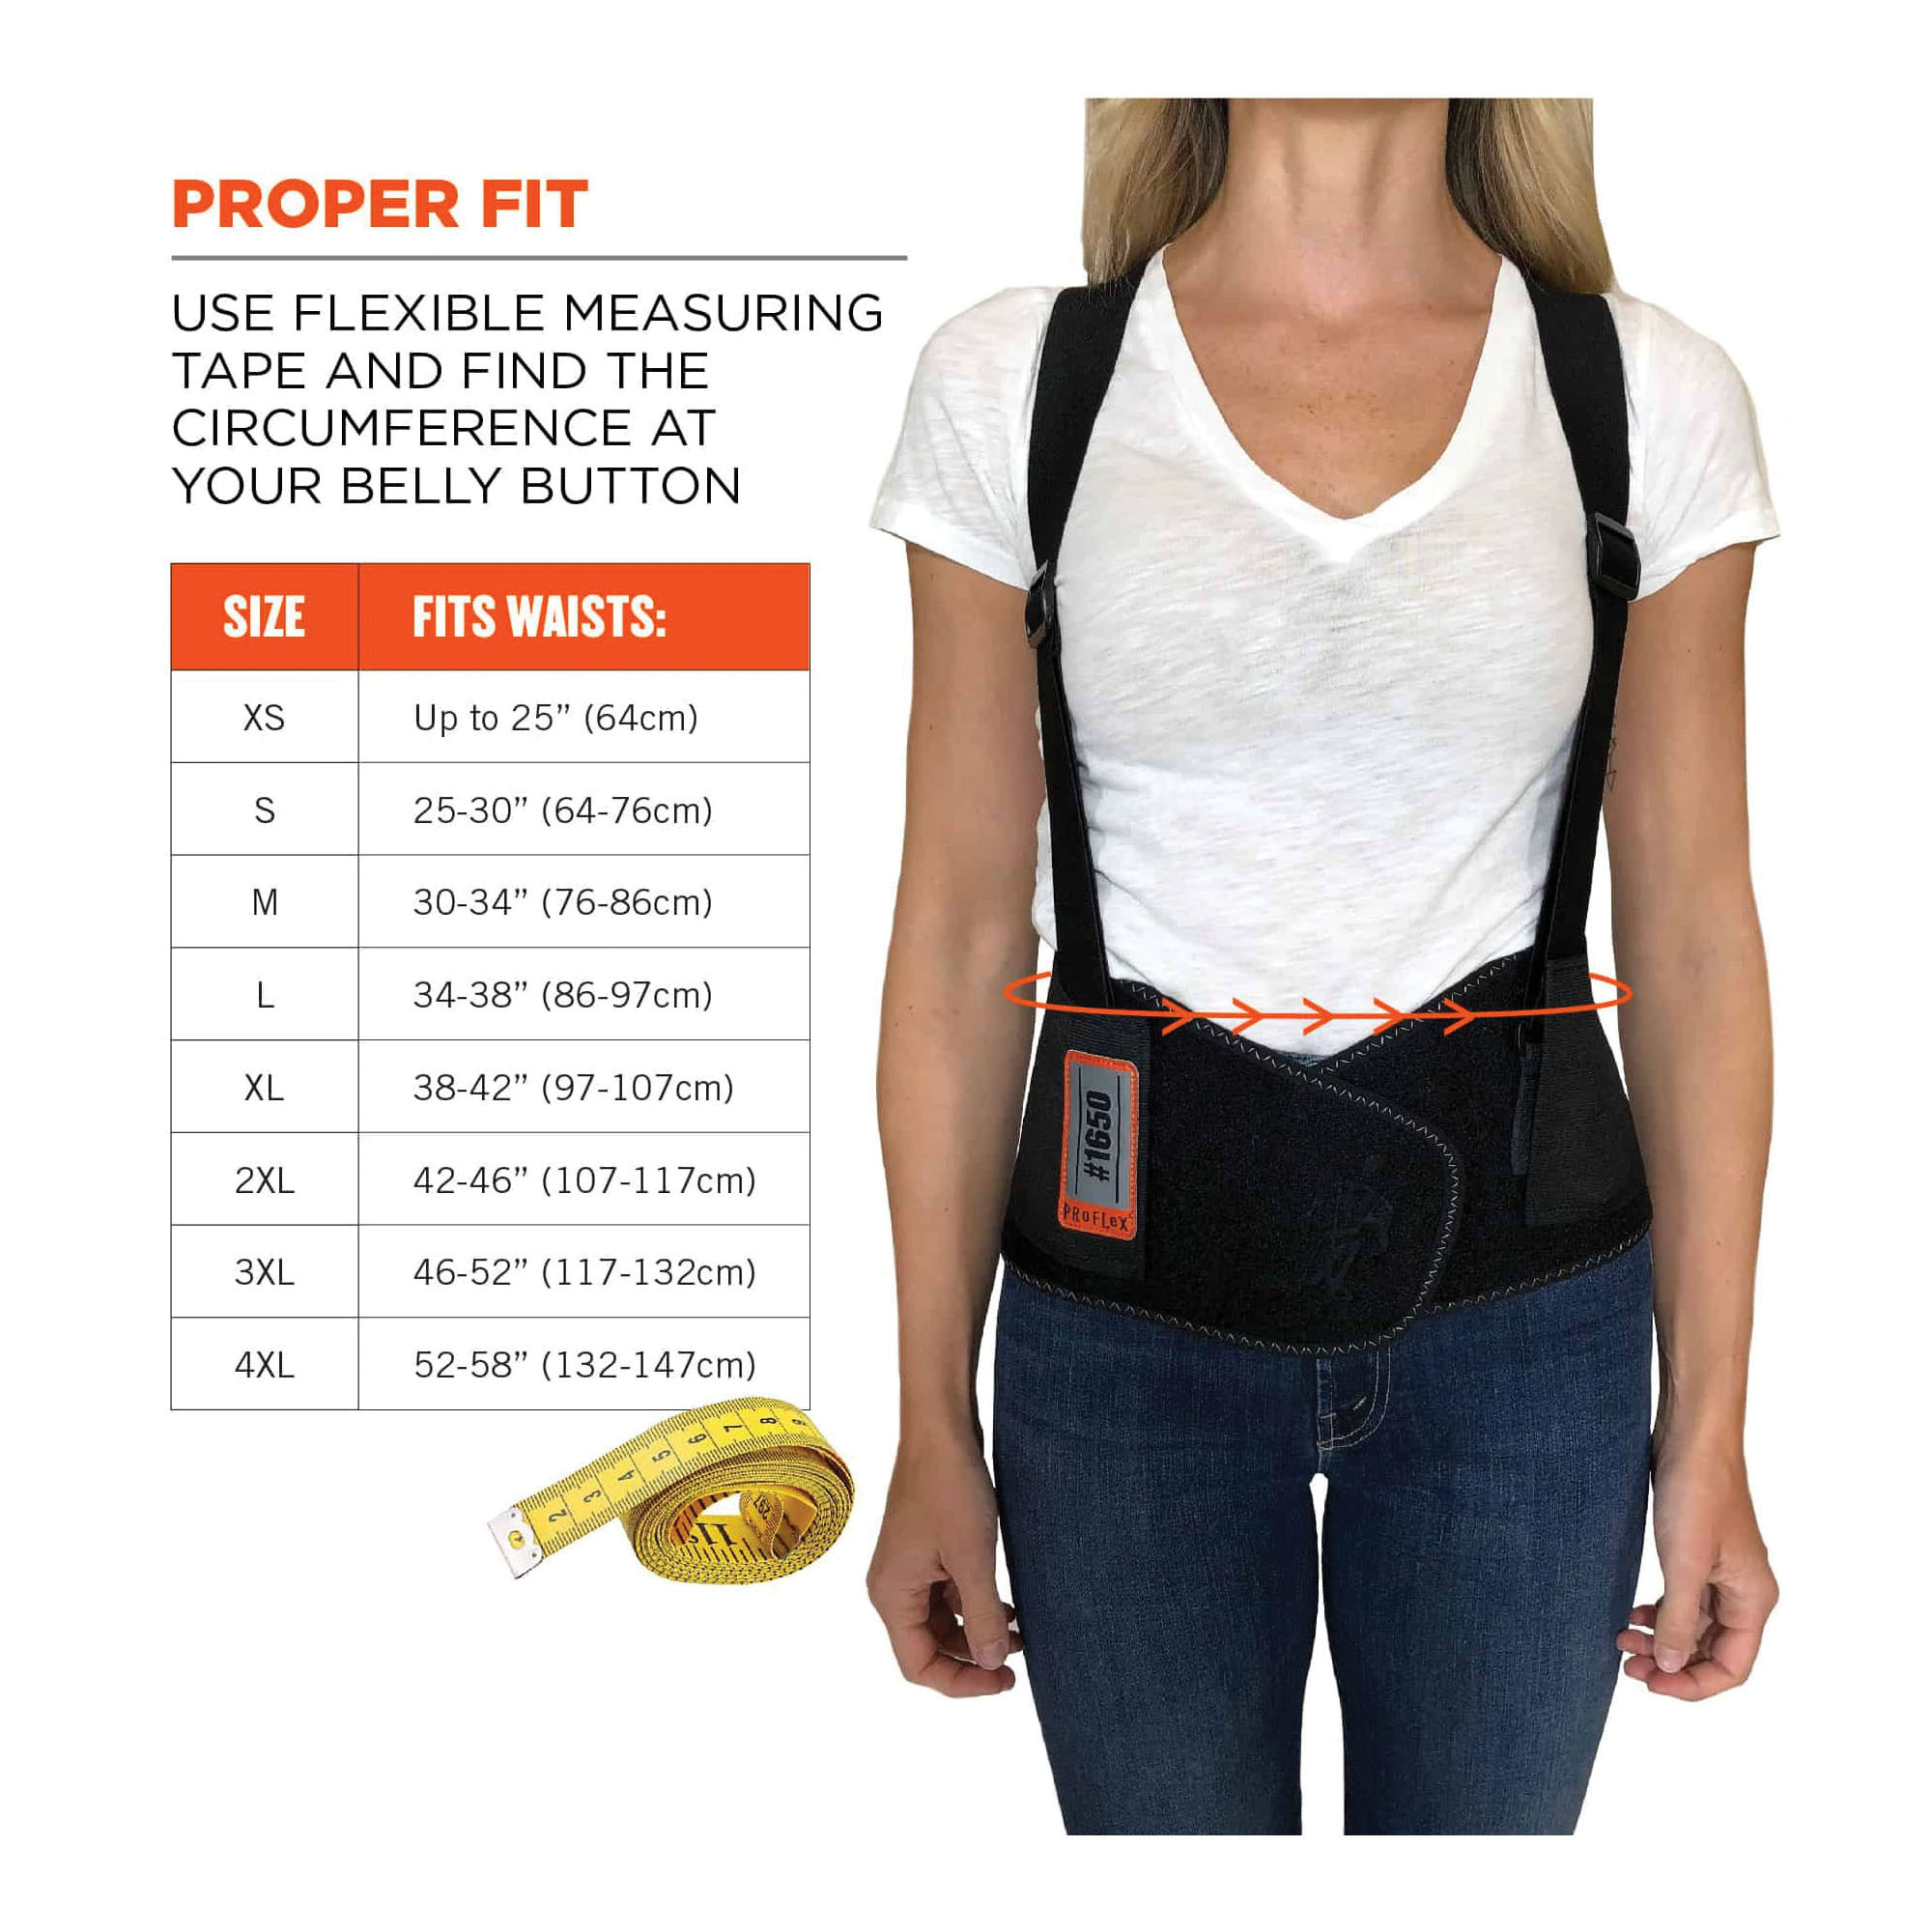 3M™ StrongArm® 051131-27524 ErgoSkeleton™ V22, L, 42 to 51 in Fits Waist, Rugged Plastic, Black/Red